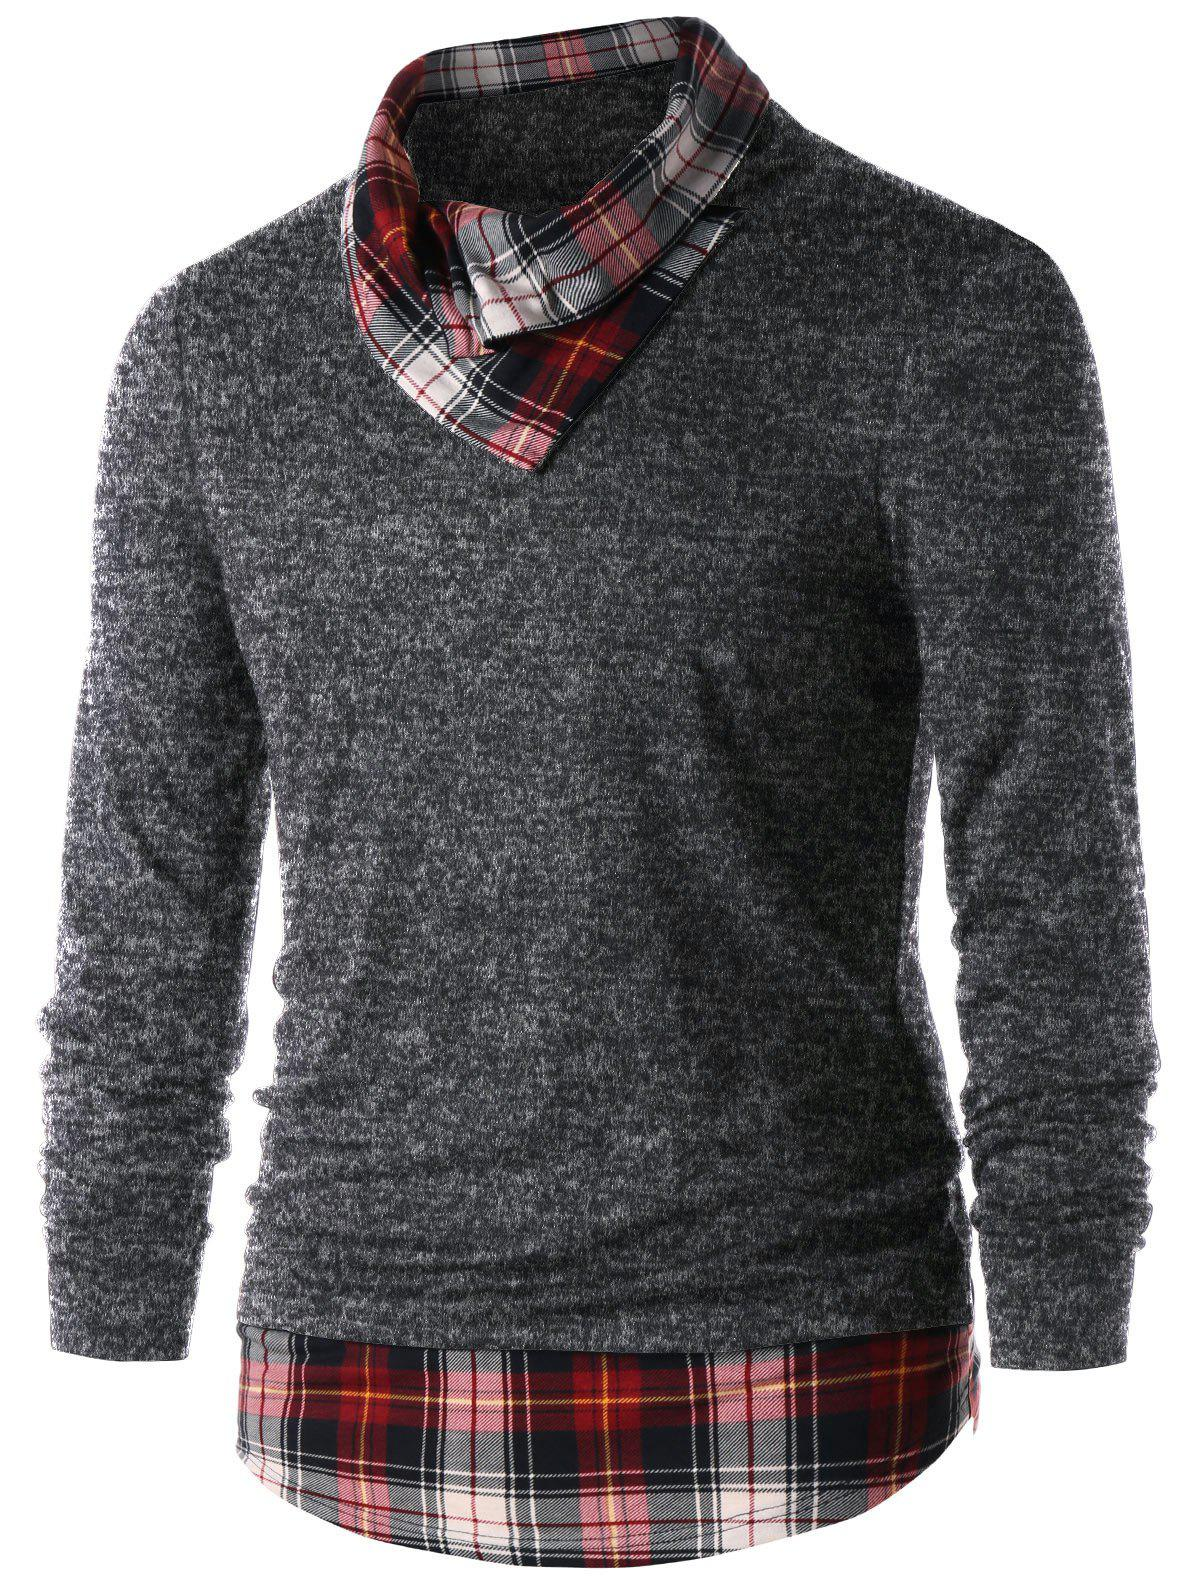 Heaps Collar Plaid Trim Top - DARK GRAY M